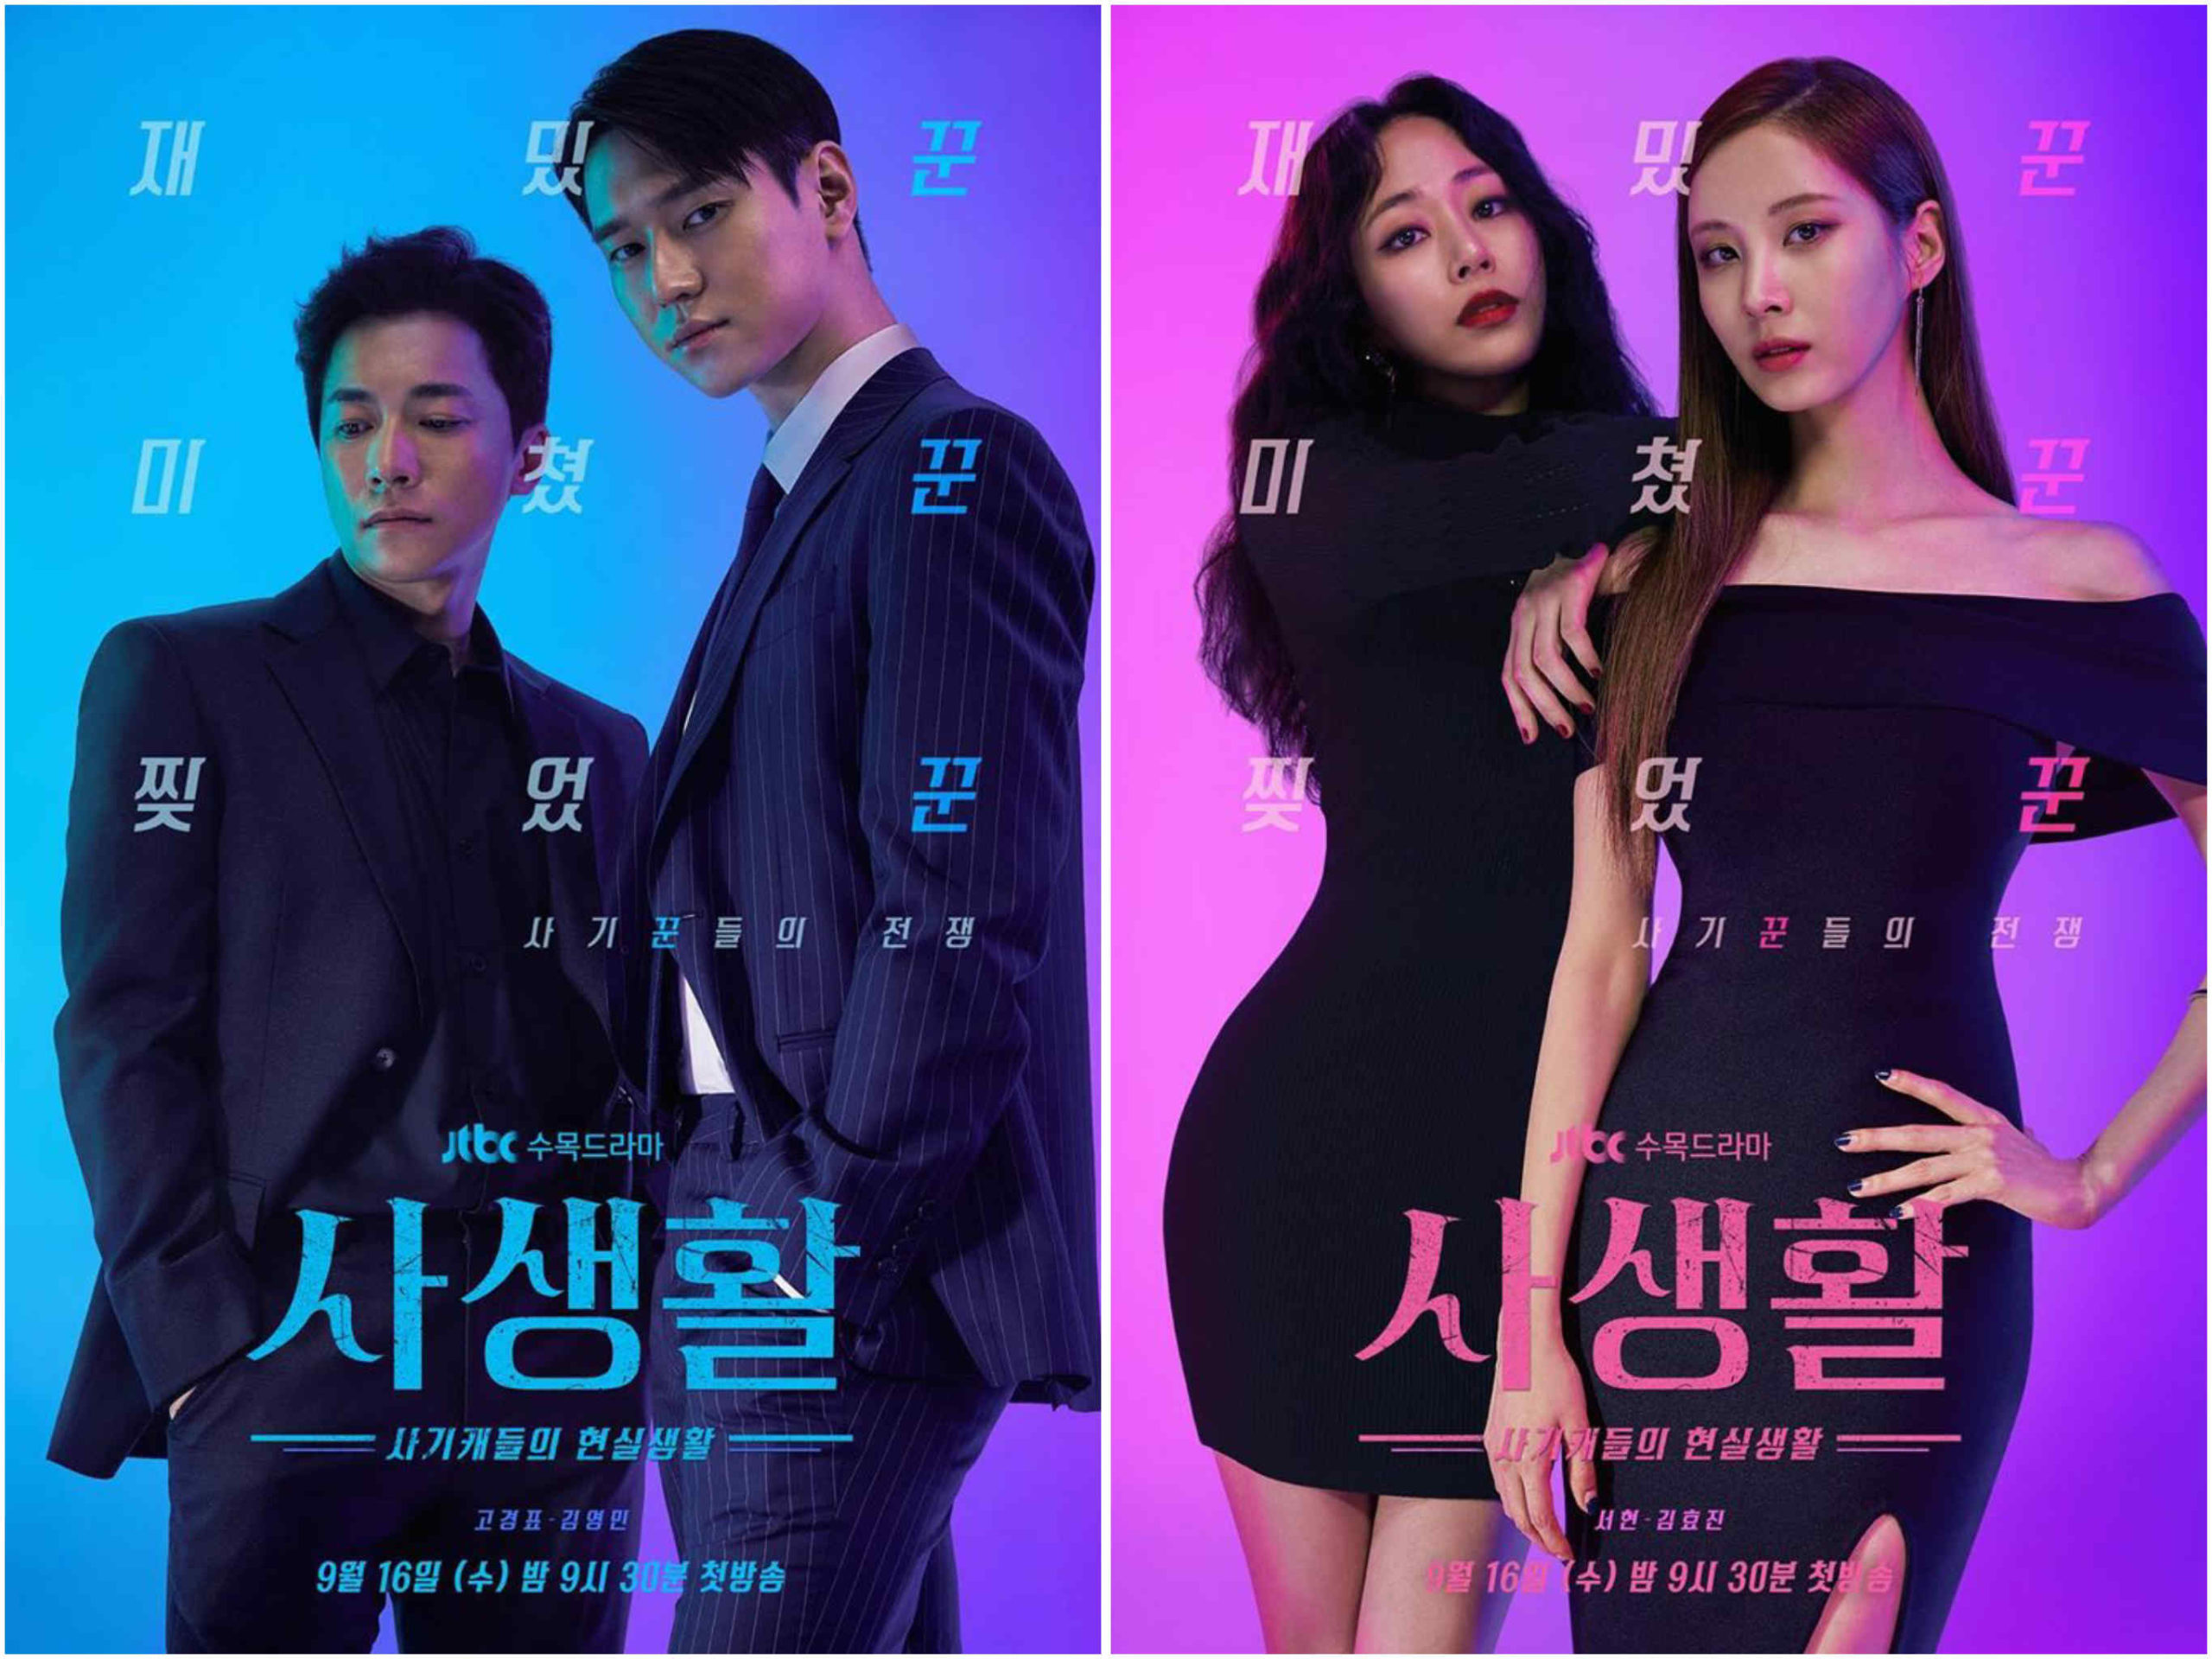 New Korean Dramas 2020 - Private Lives, Seohyun SNSD, Go Kyung-pyo, Kim Hyo-jin, Kim Young-min